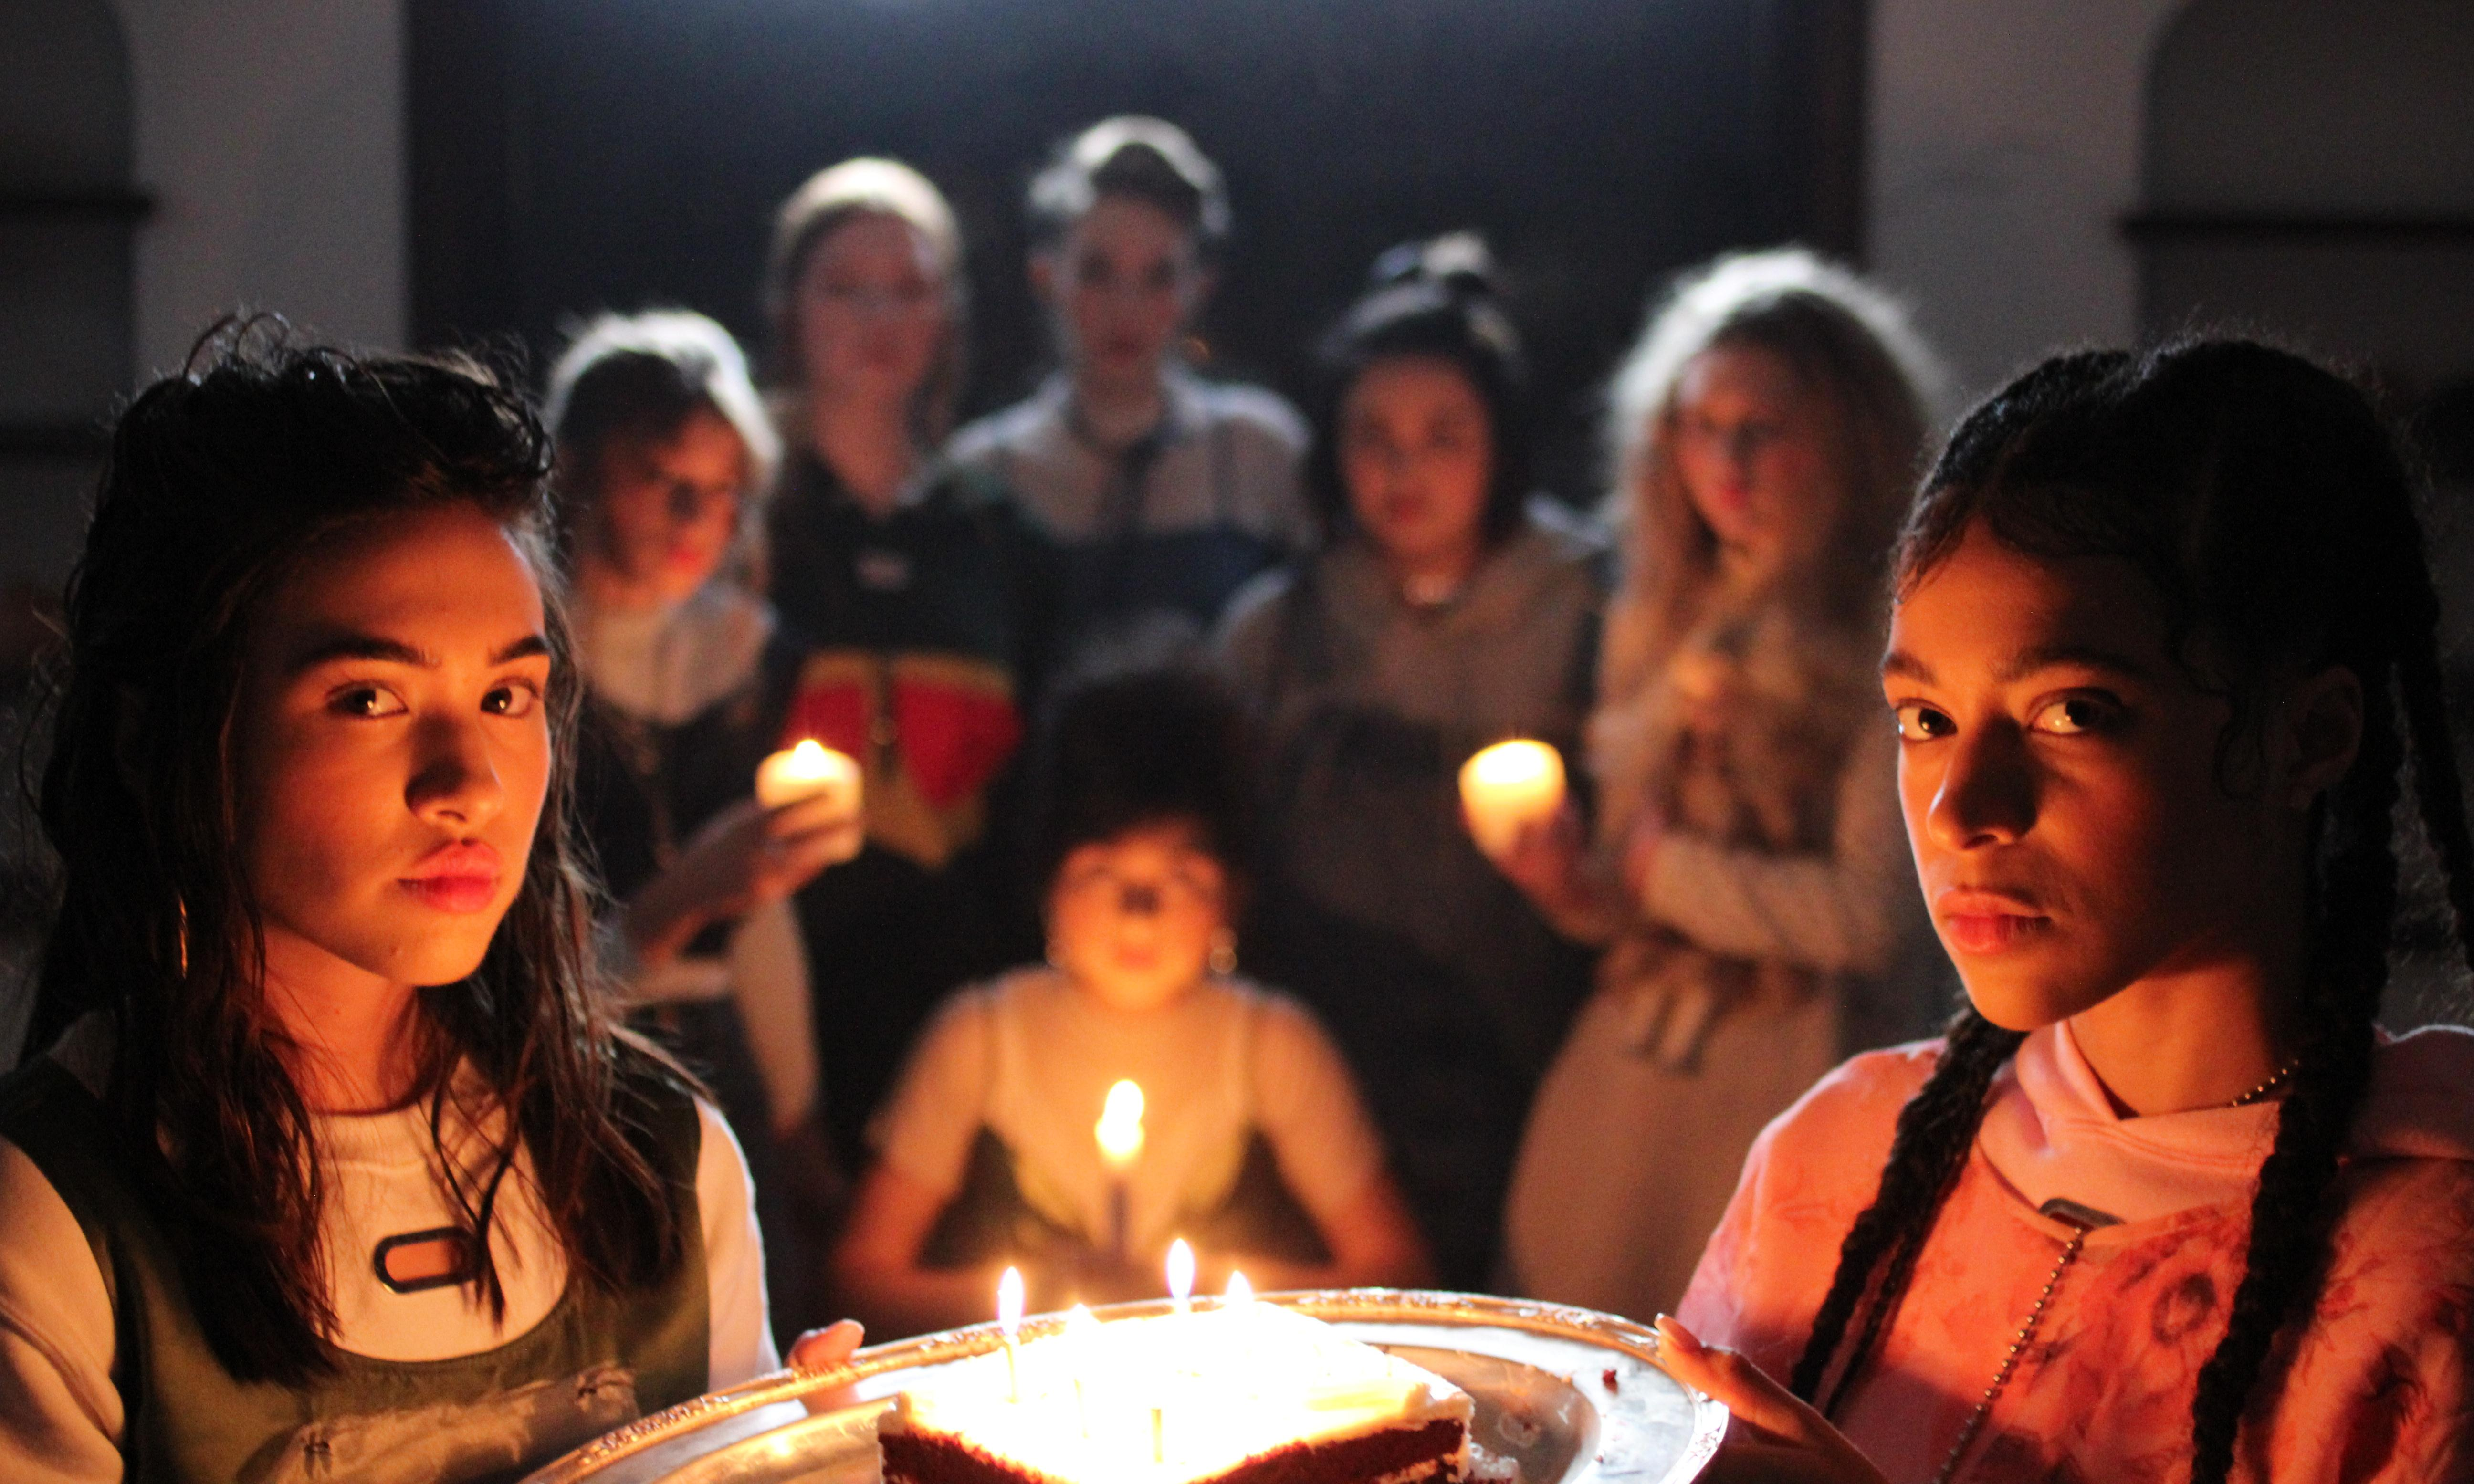 Ladyworld review – teen sleepover descends into apocalyptic delirium